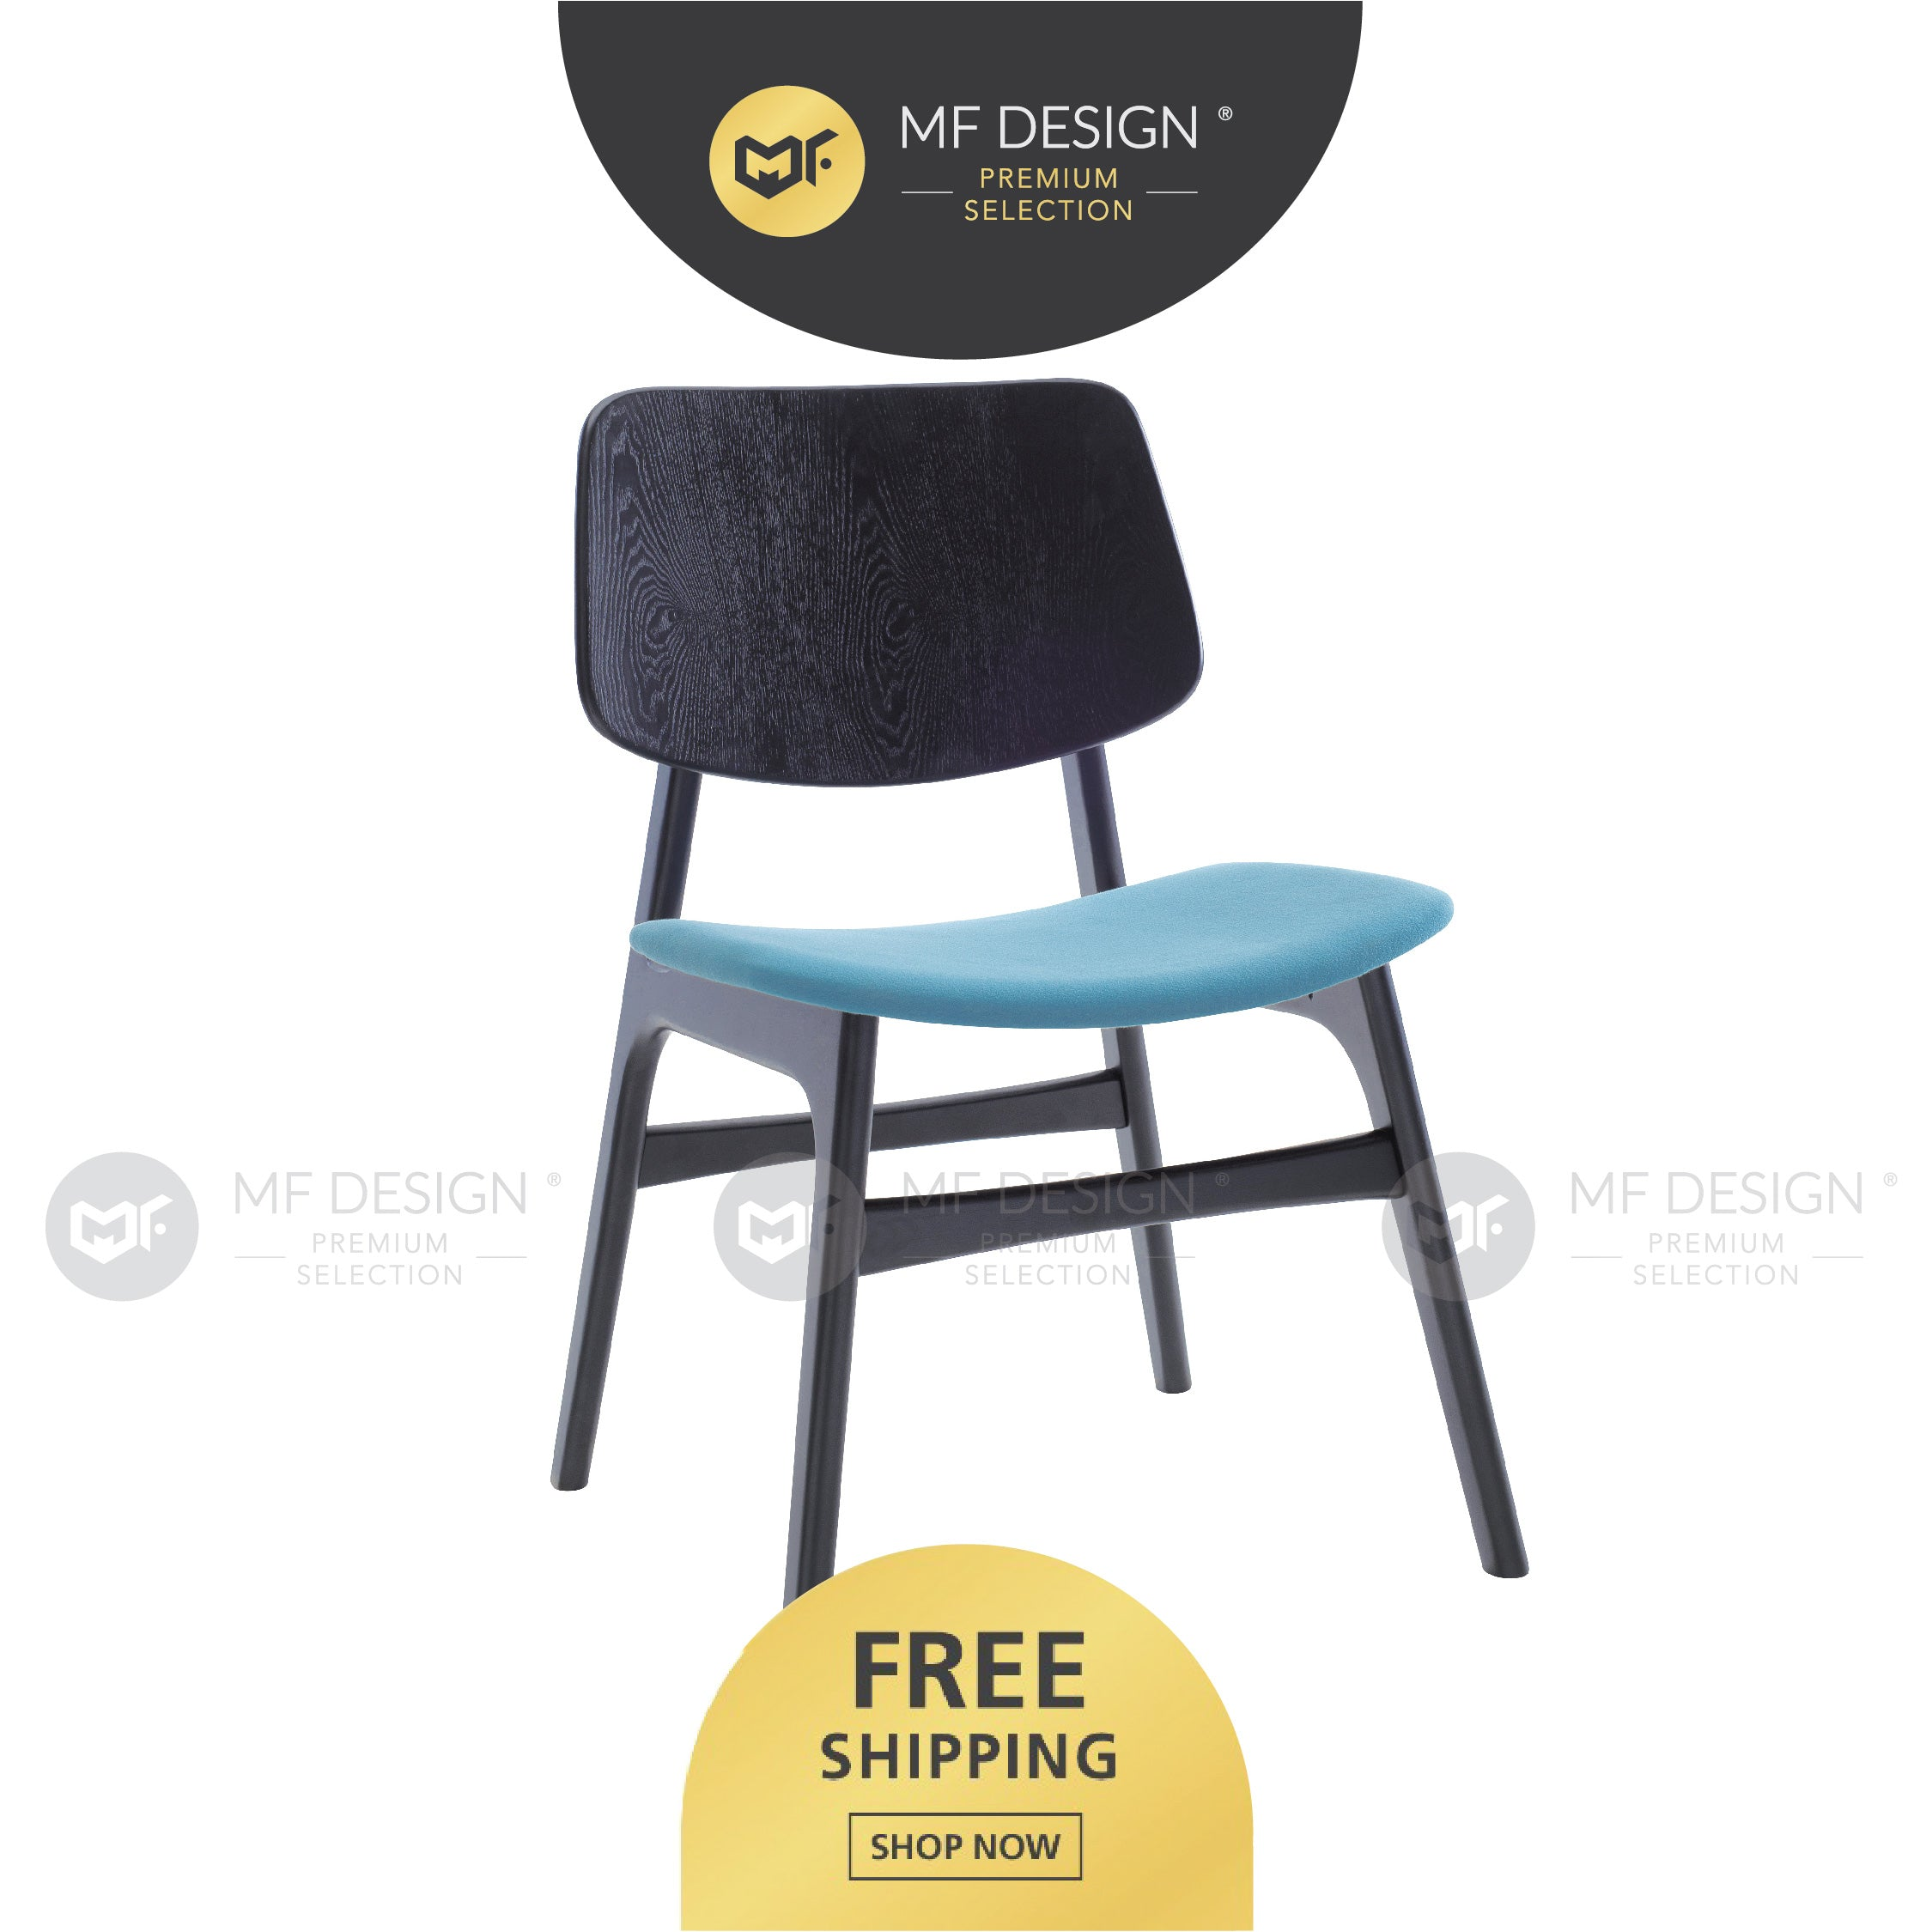 MFD Premium Magnes Dining Chair / Wooden Chair / Solid Rubber Wood / Kerusi Makan Kayu Getah / Living Room /Scandinavian